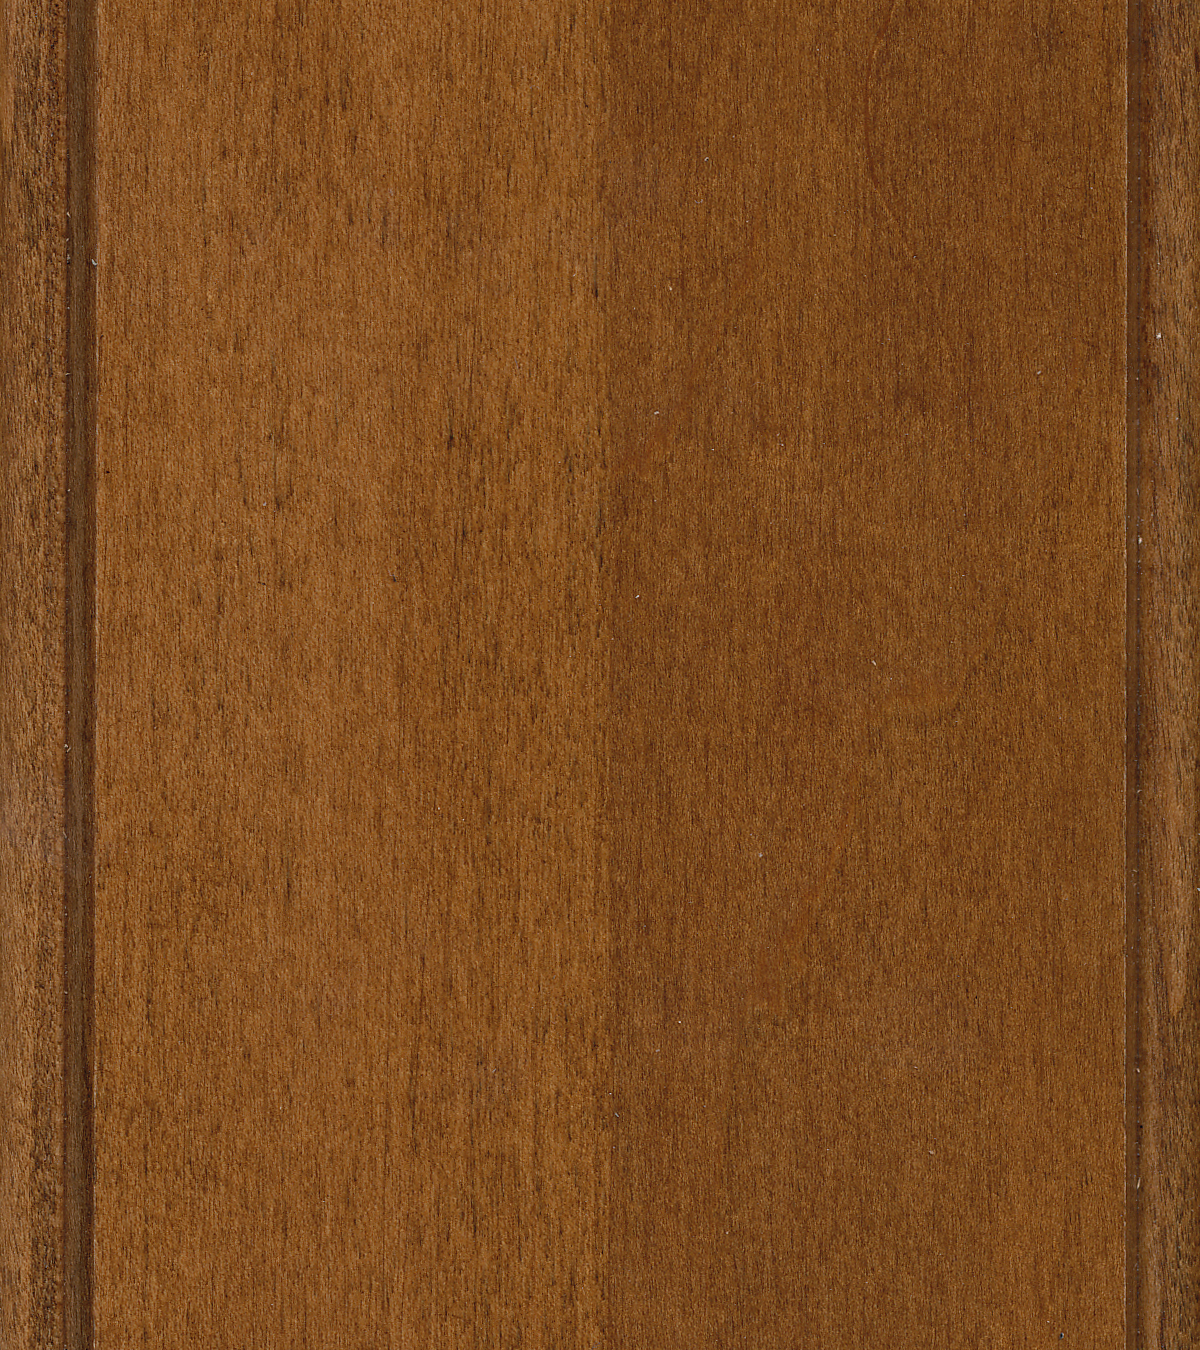 Brown Maple: Sealy Maple